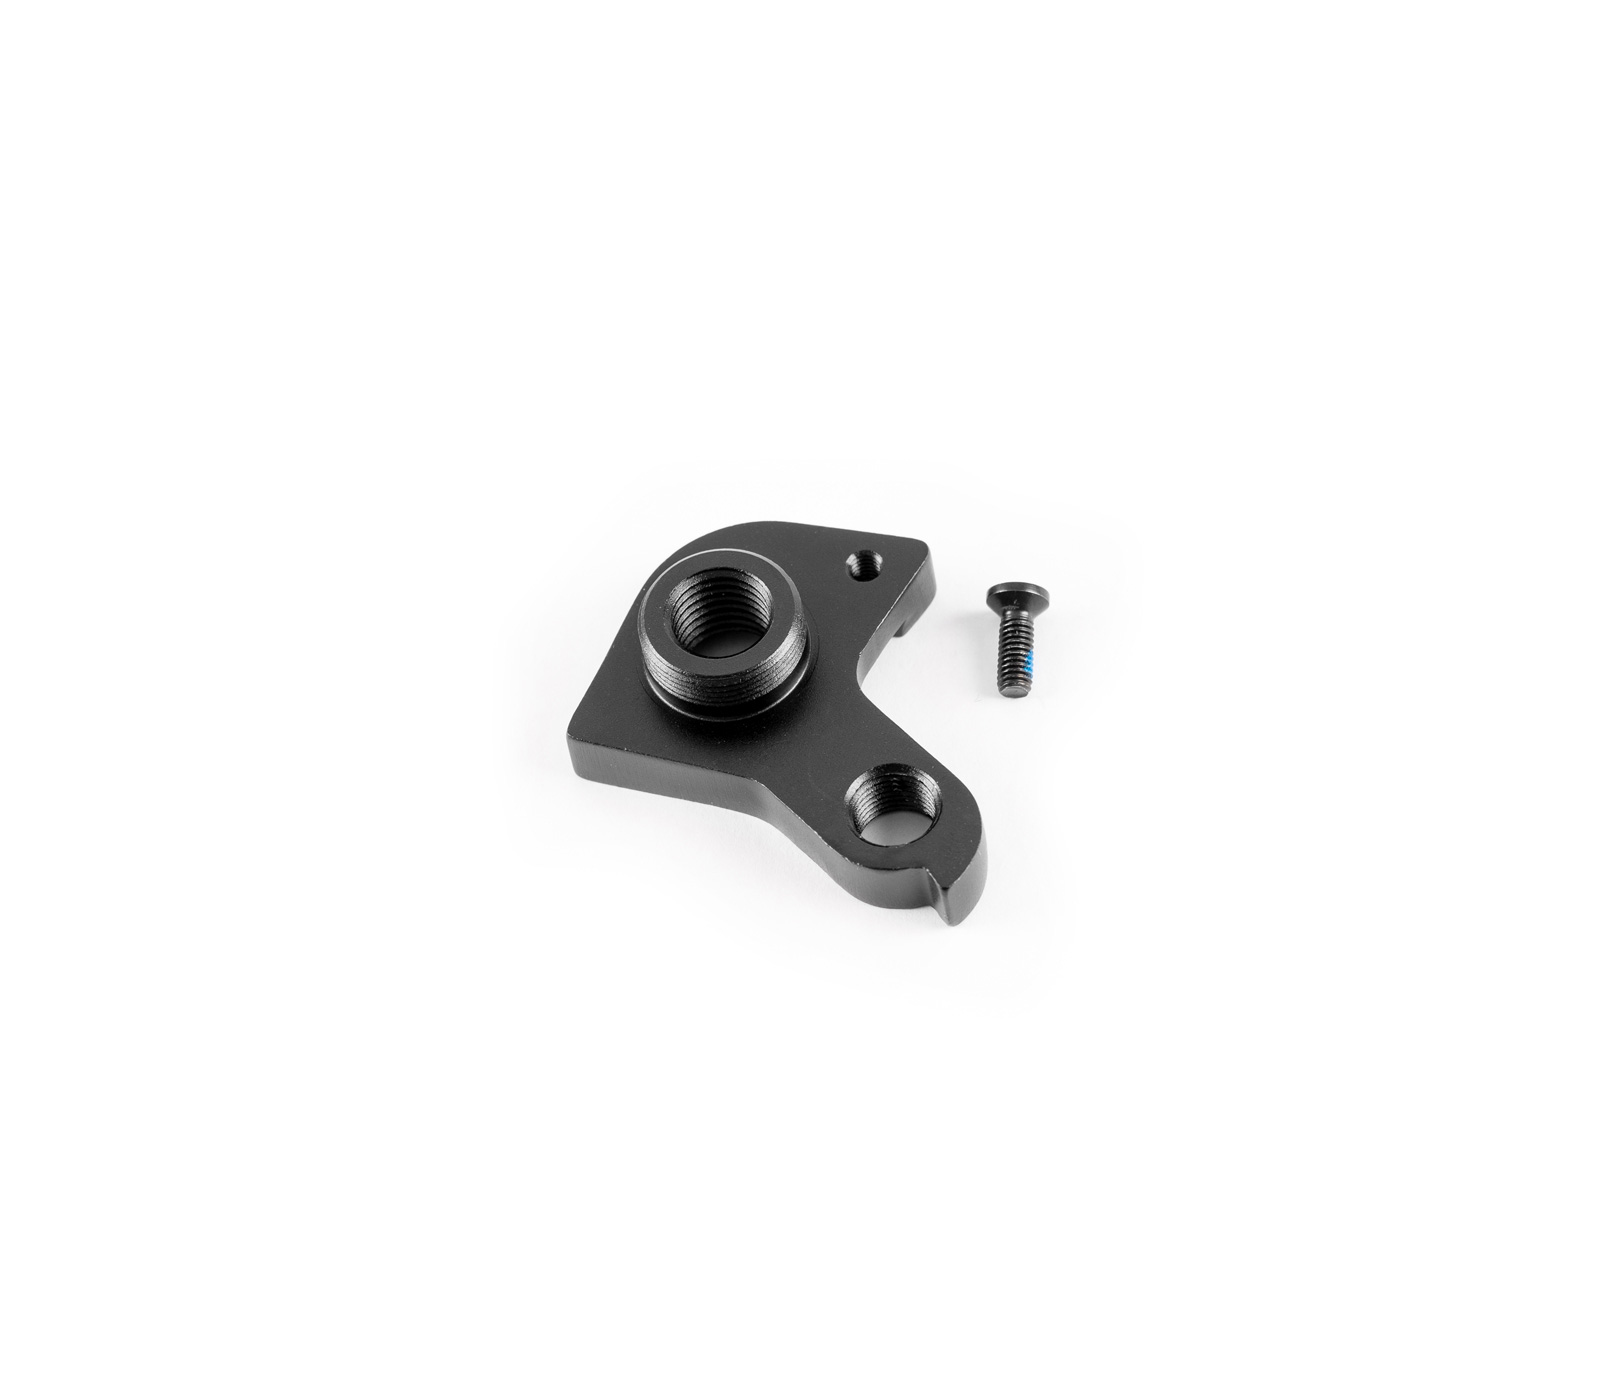 ROAD STD DERAILLEUR HANGER X12 KIT